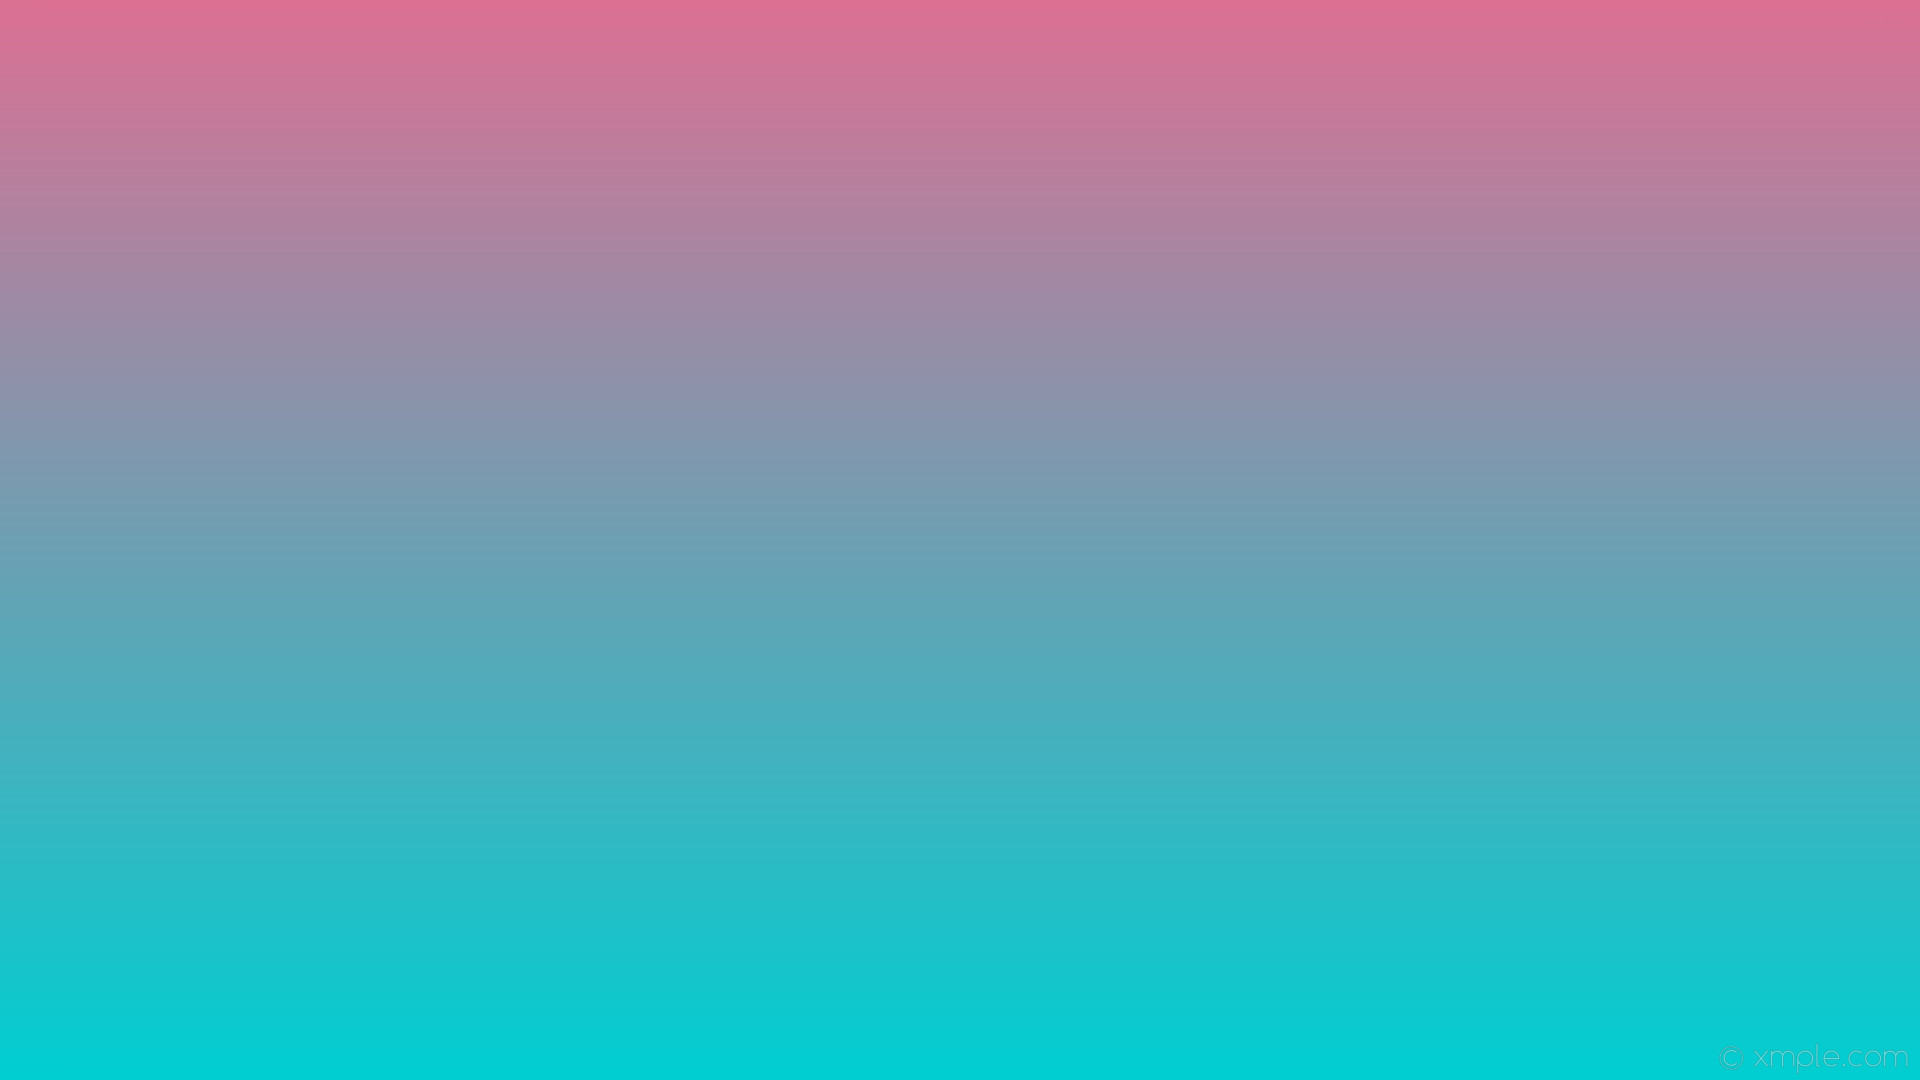 Blue and pink ombre wallpaper 60 images Ombre aqua wallpaper